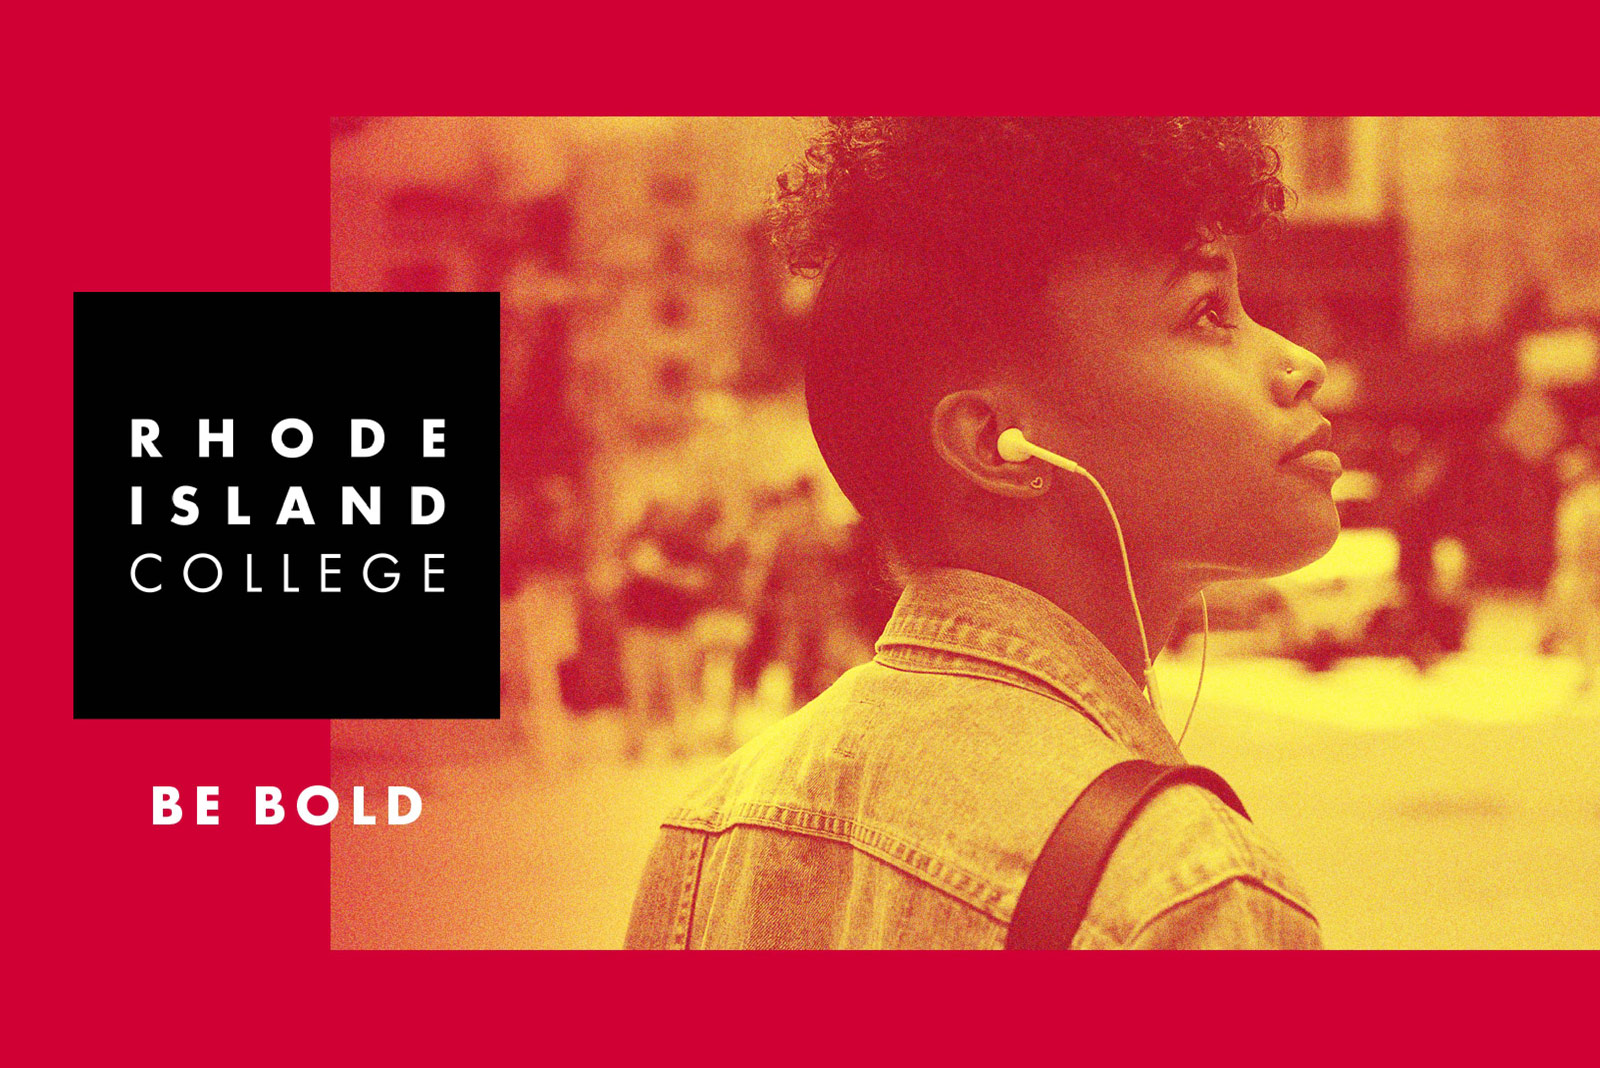 A student wears earbuds. Text reads: Rhode Island College, Be Bold.